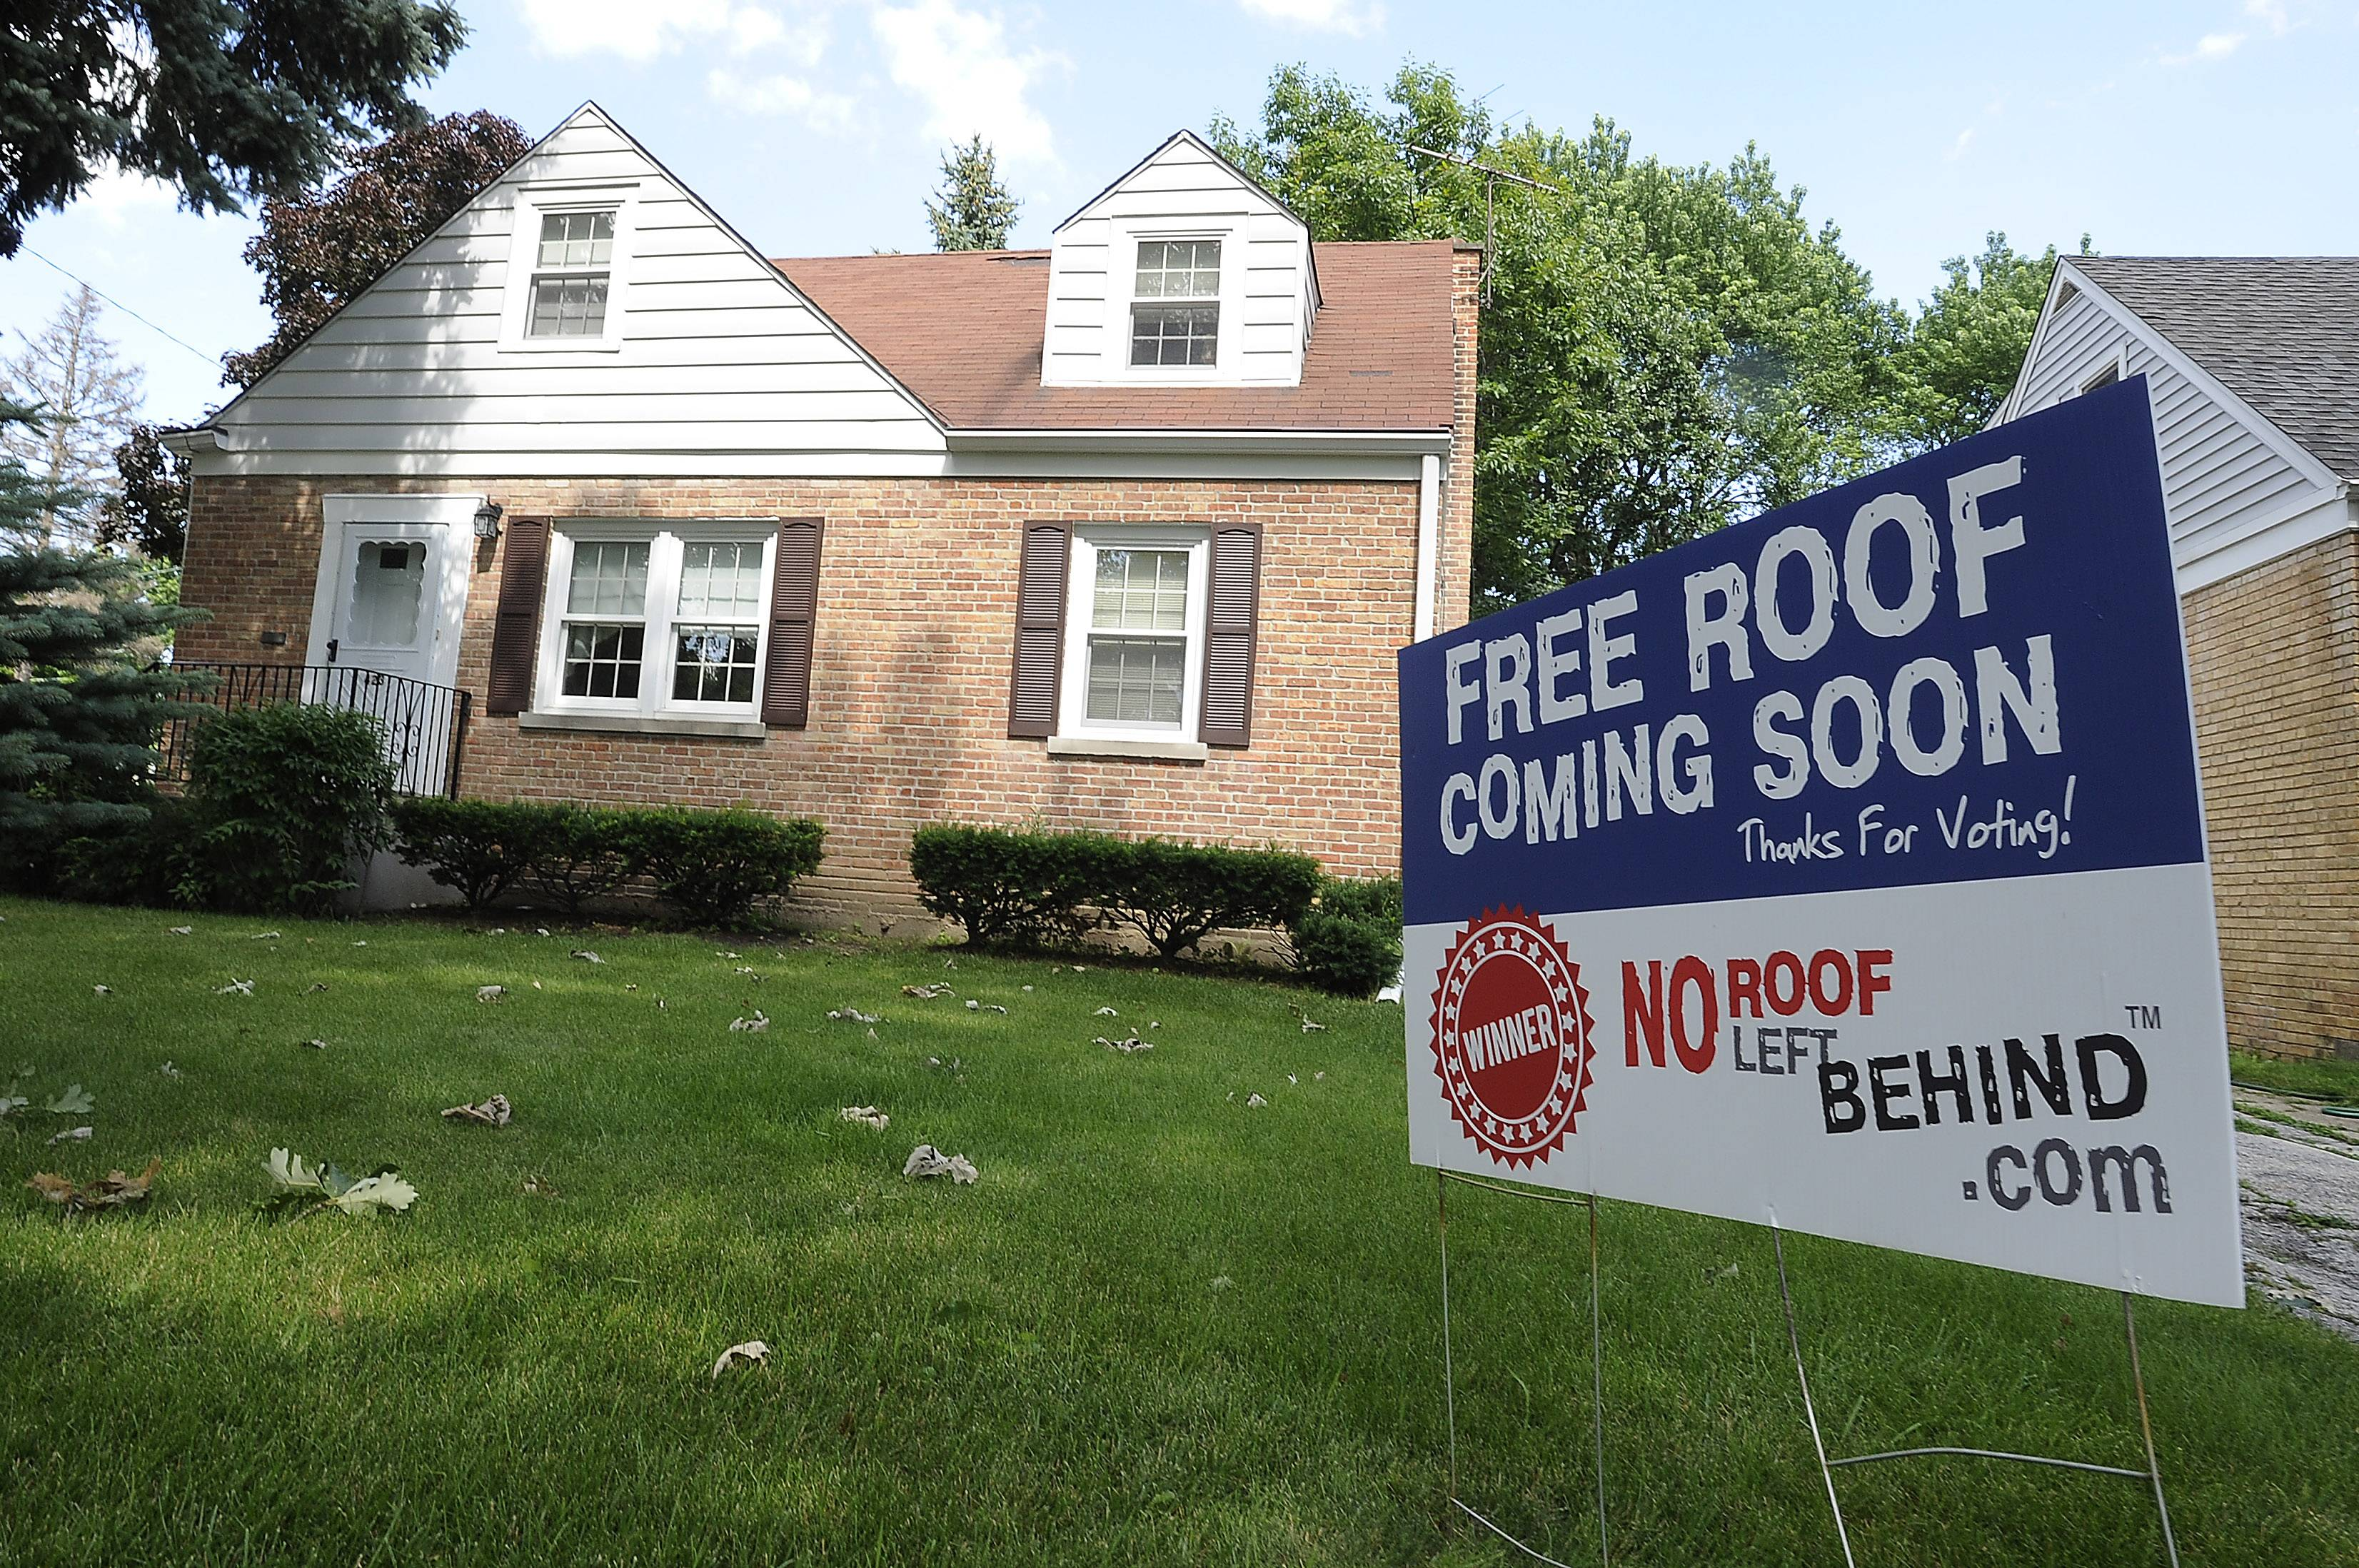 Mount Prospect resident Henry Blim will receive a free roof for his house as part of Peterson Roofing's No Roof Left Behind contest.